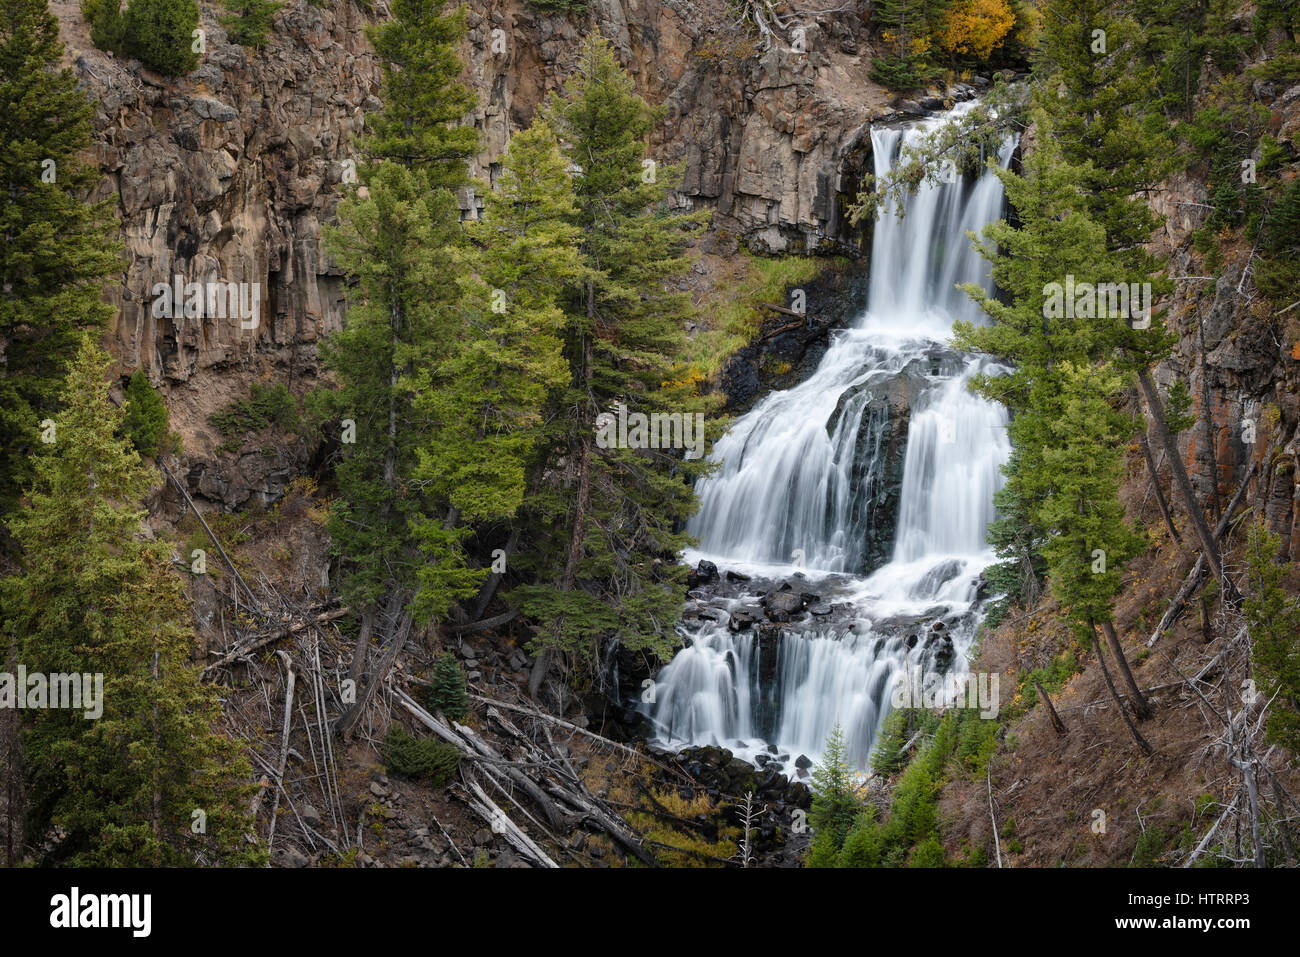 Undine Falls, Yellowstone National Park, Wyoming, USA - Stock Image